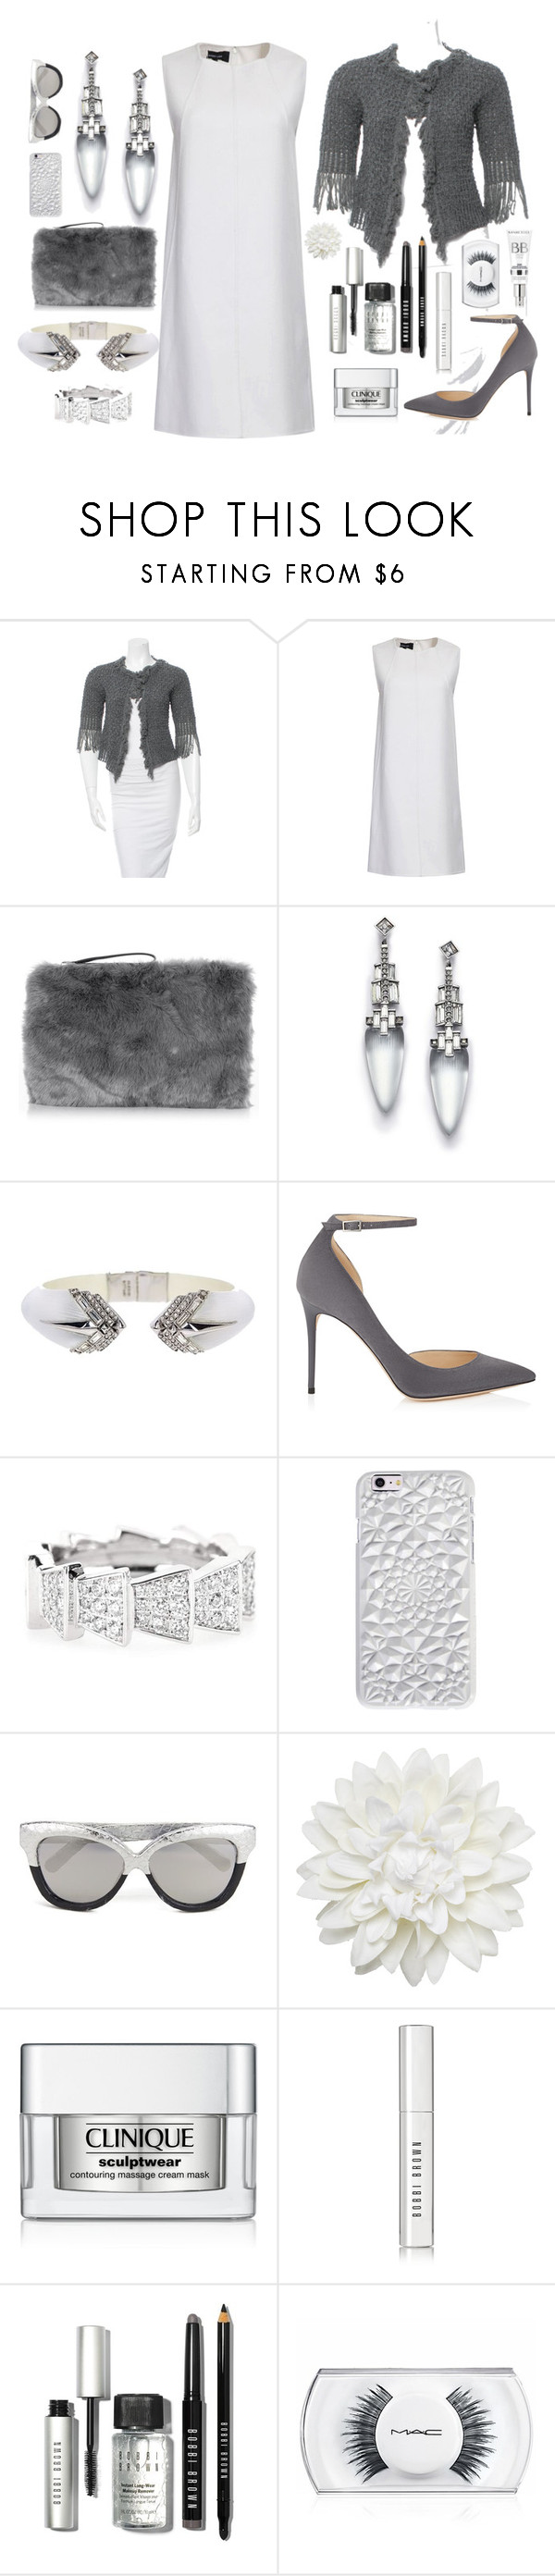 """Gray Cardigan"" by christine-sacco ❤ liked on Polyvore featuring Chanel, Oasis, Alexis Bittar, Jimmy Choo, Cada, Felony Case, Linda Farrow, Monki, Clinique and Bobbi Brown Cosmetics"